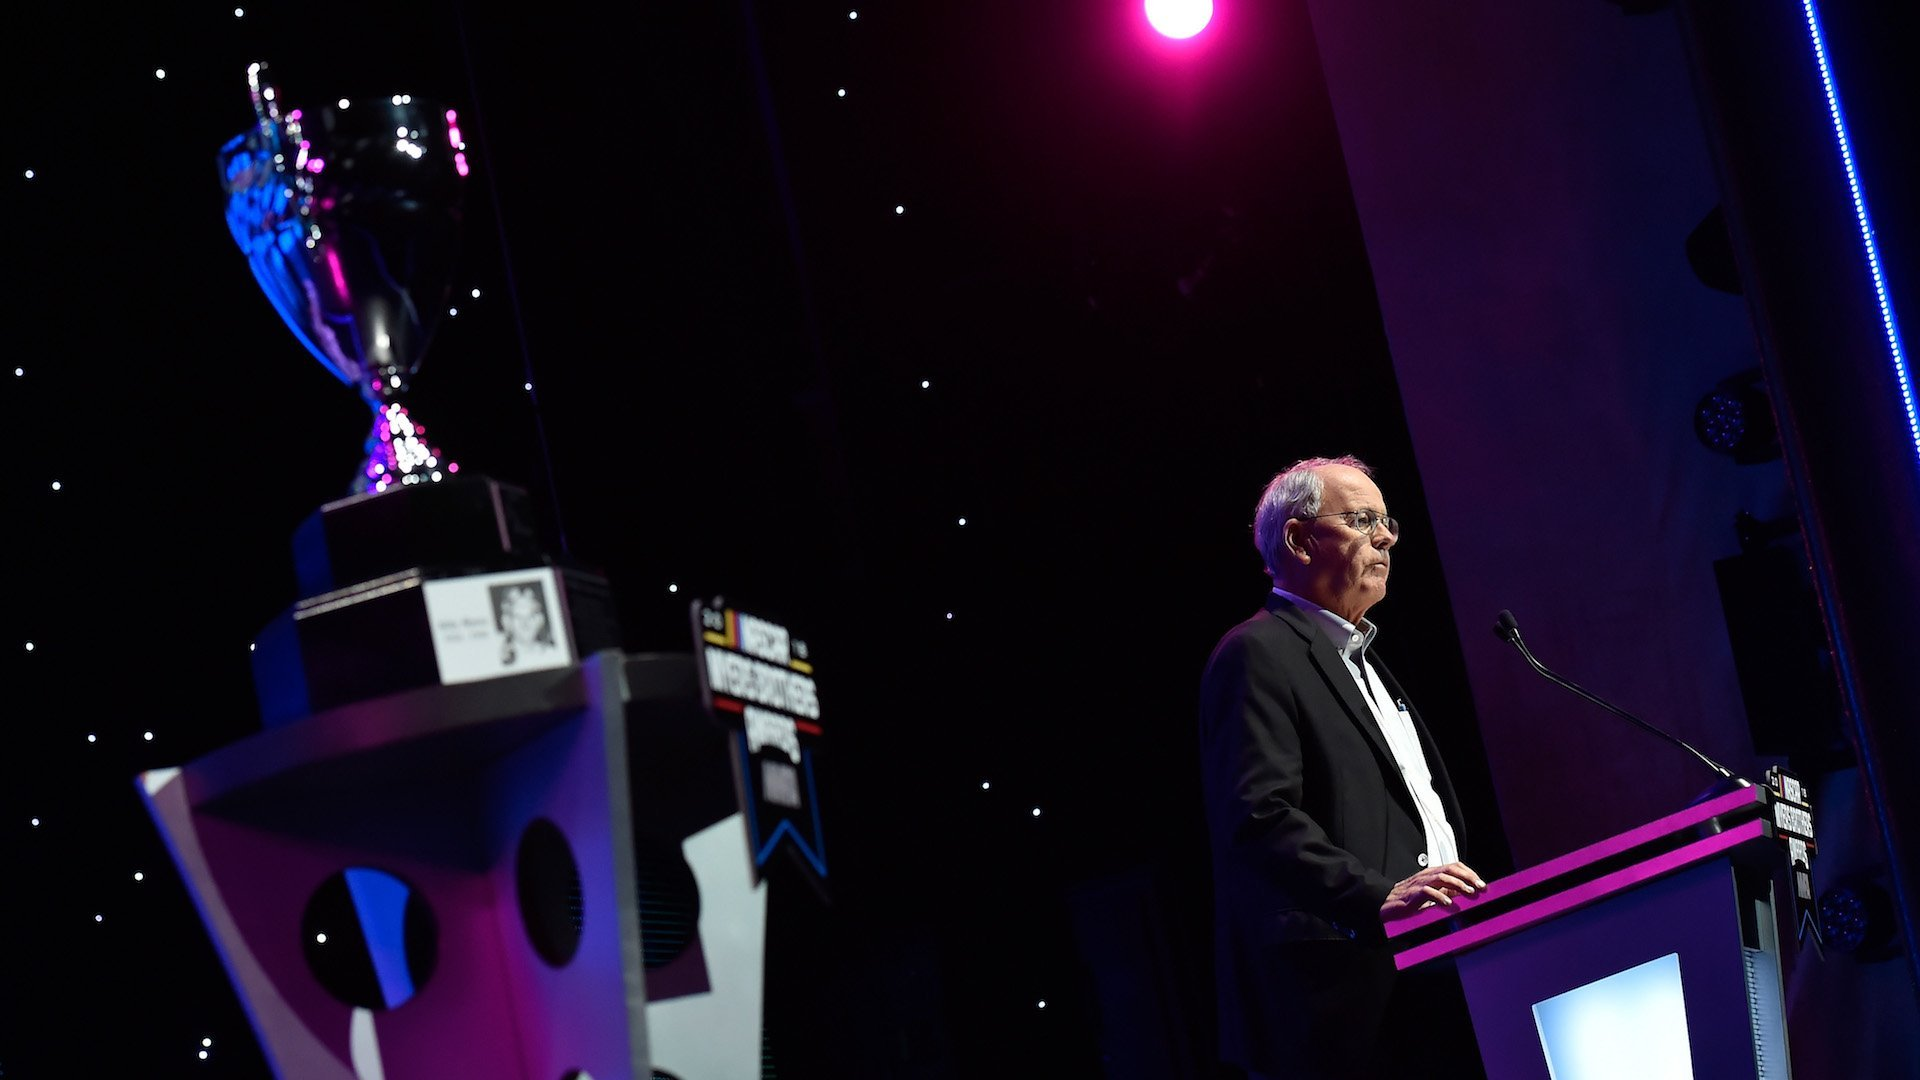 NASCAR Chairman and CEO Jim France Recognized for Lifelong Contributions to the Sport